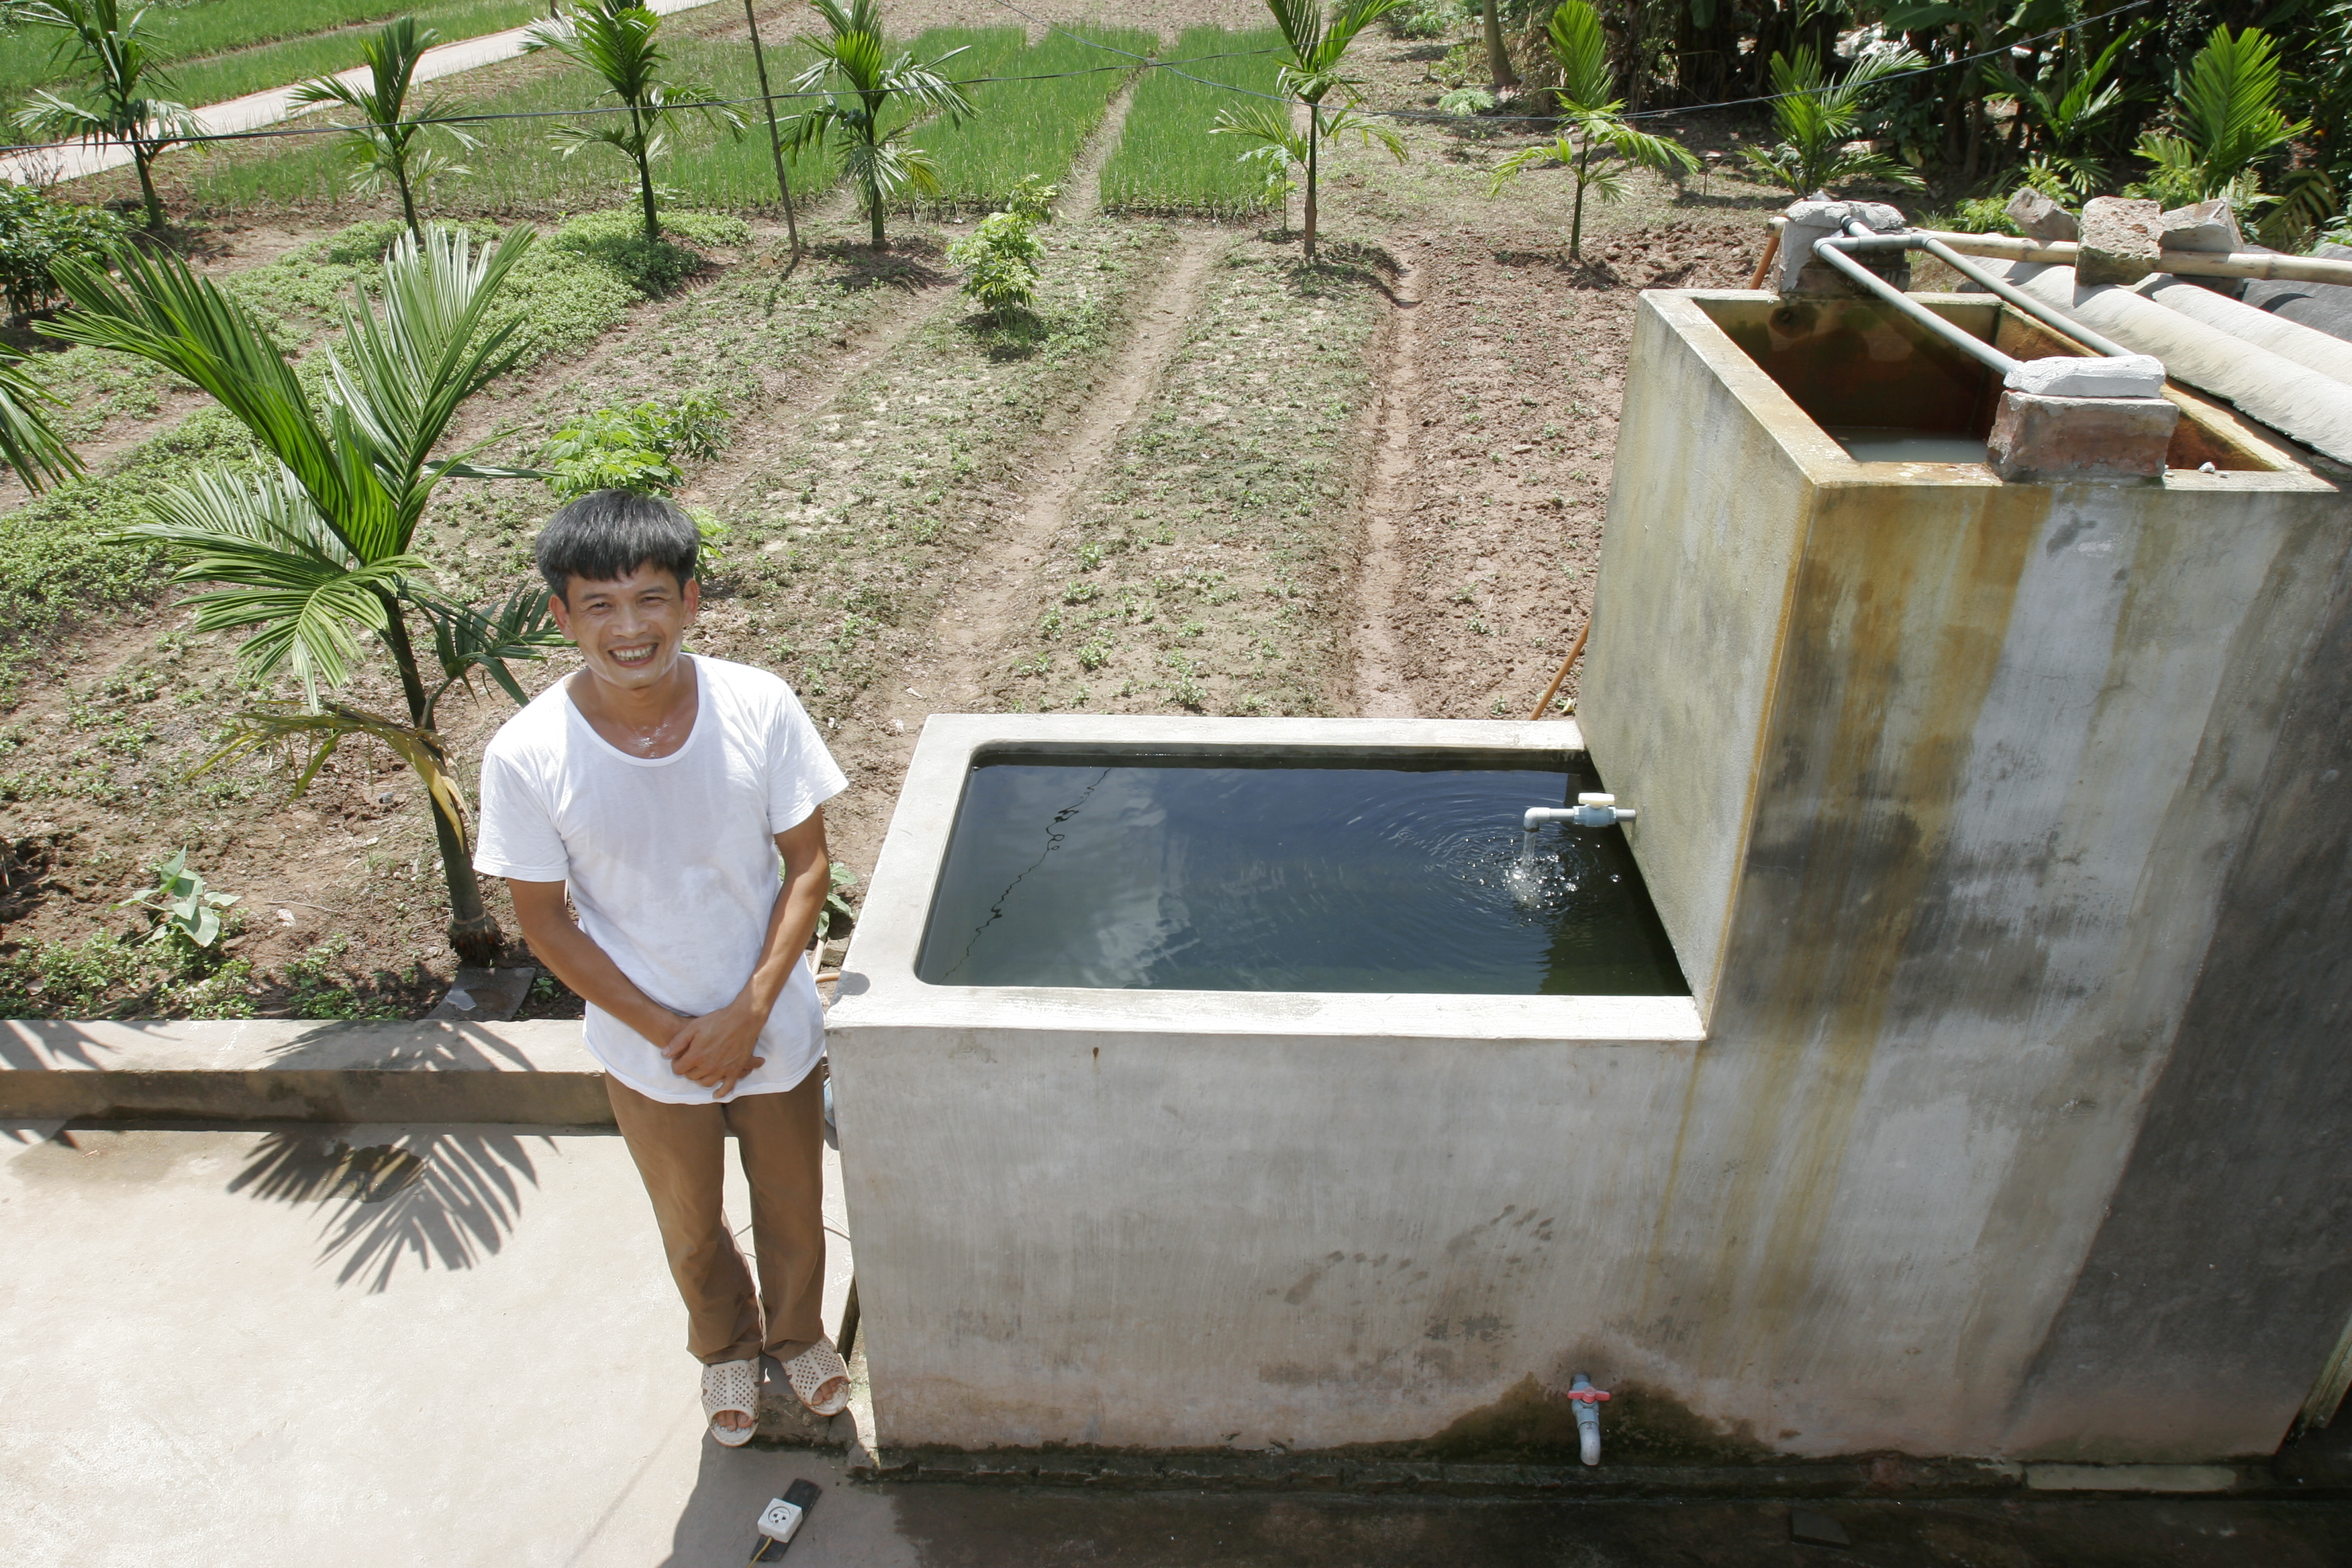 Dao Van Manh in Vietnam has installed a sand filter to clean his stored water. Photo by AusAID